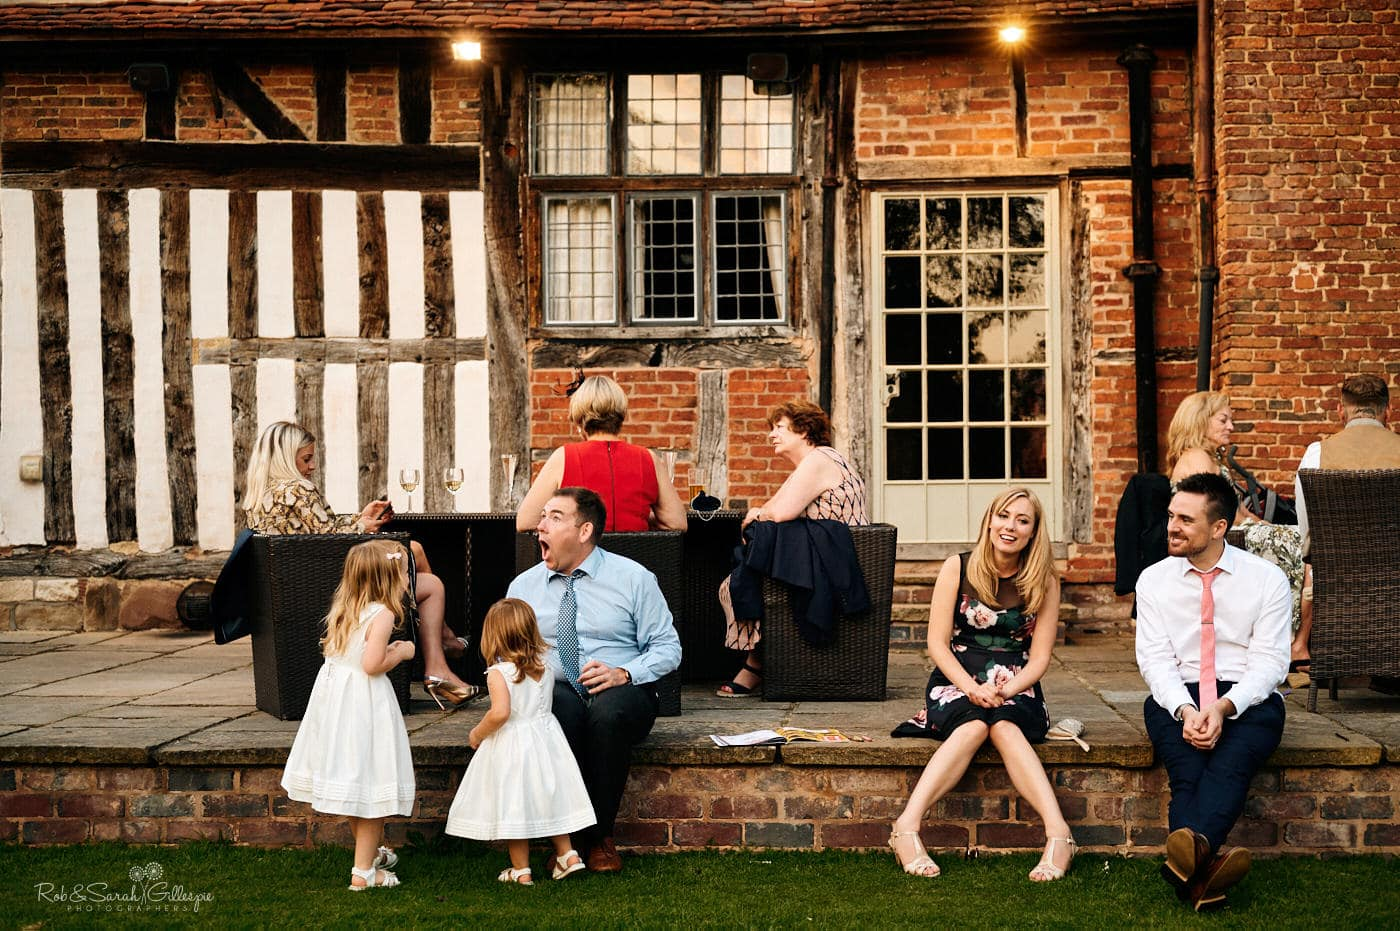 Wedding guests sitting on stone step at Gorcott Hall